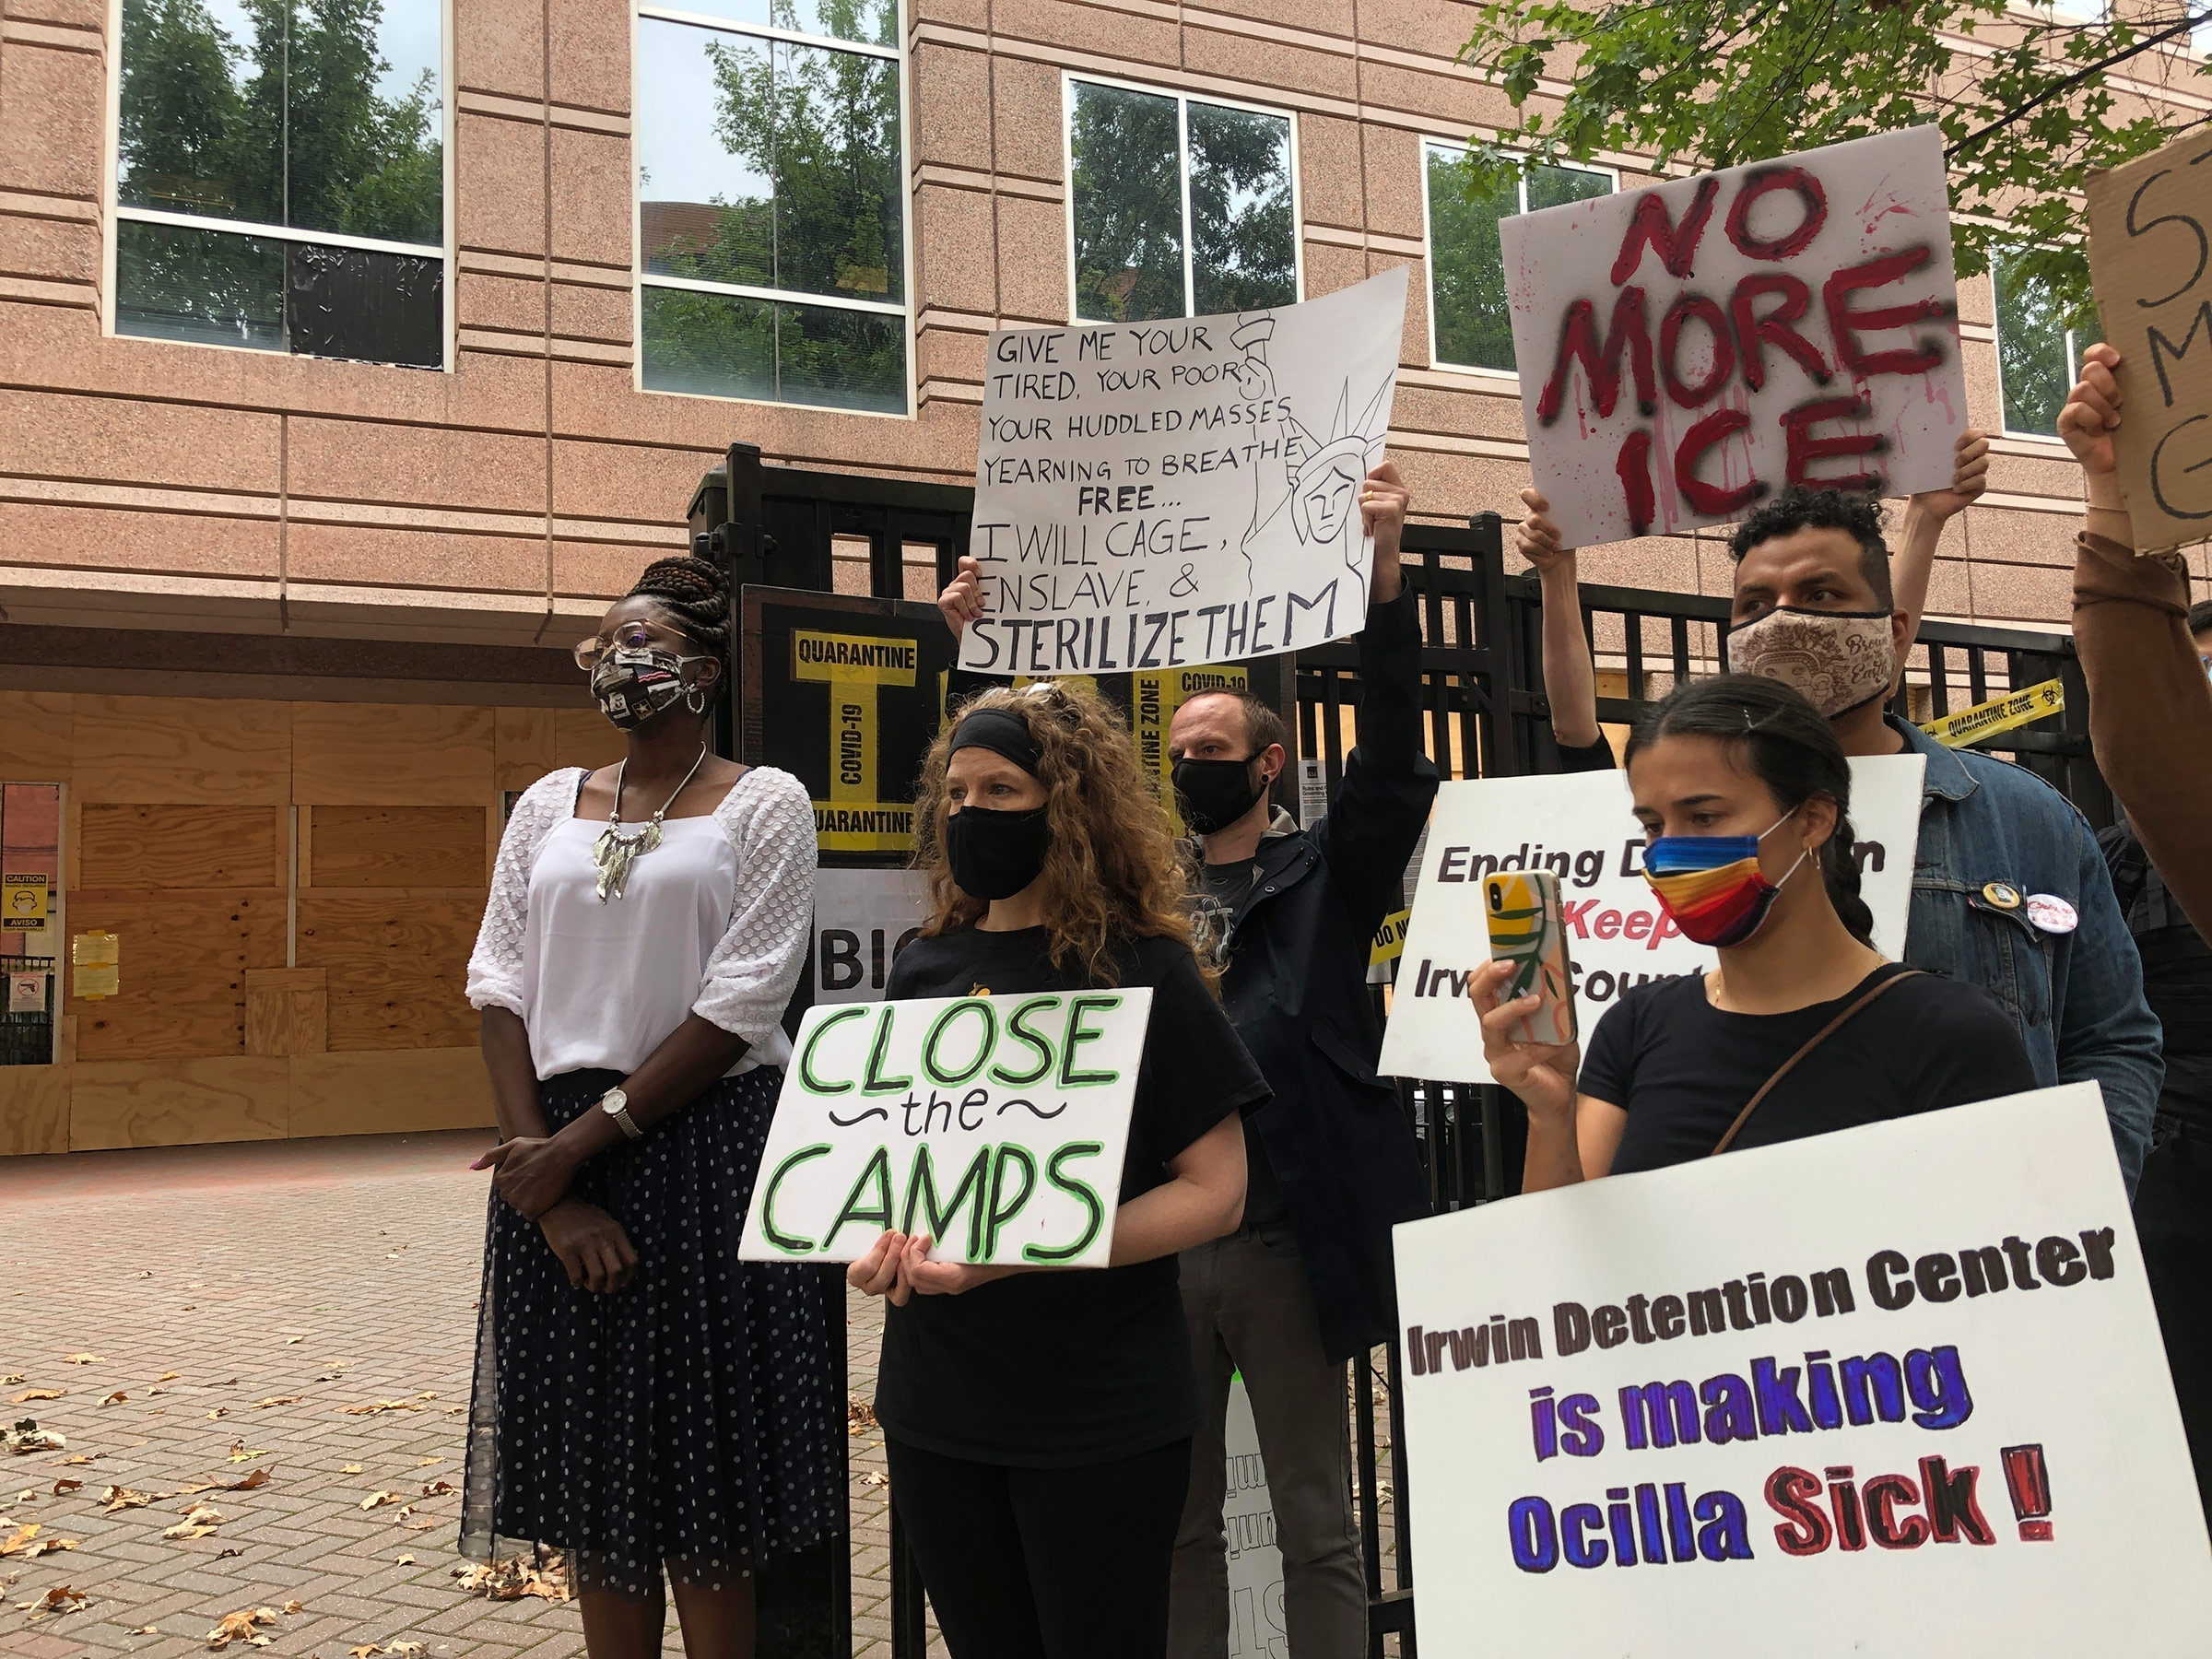 Dawn Wooten, left, a nurse at Irwin County Detention Center in Ocilla, Ga., speaks at a news conference in Atlanta protesting conditions at the immigration jail, on Sept. 15.